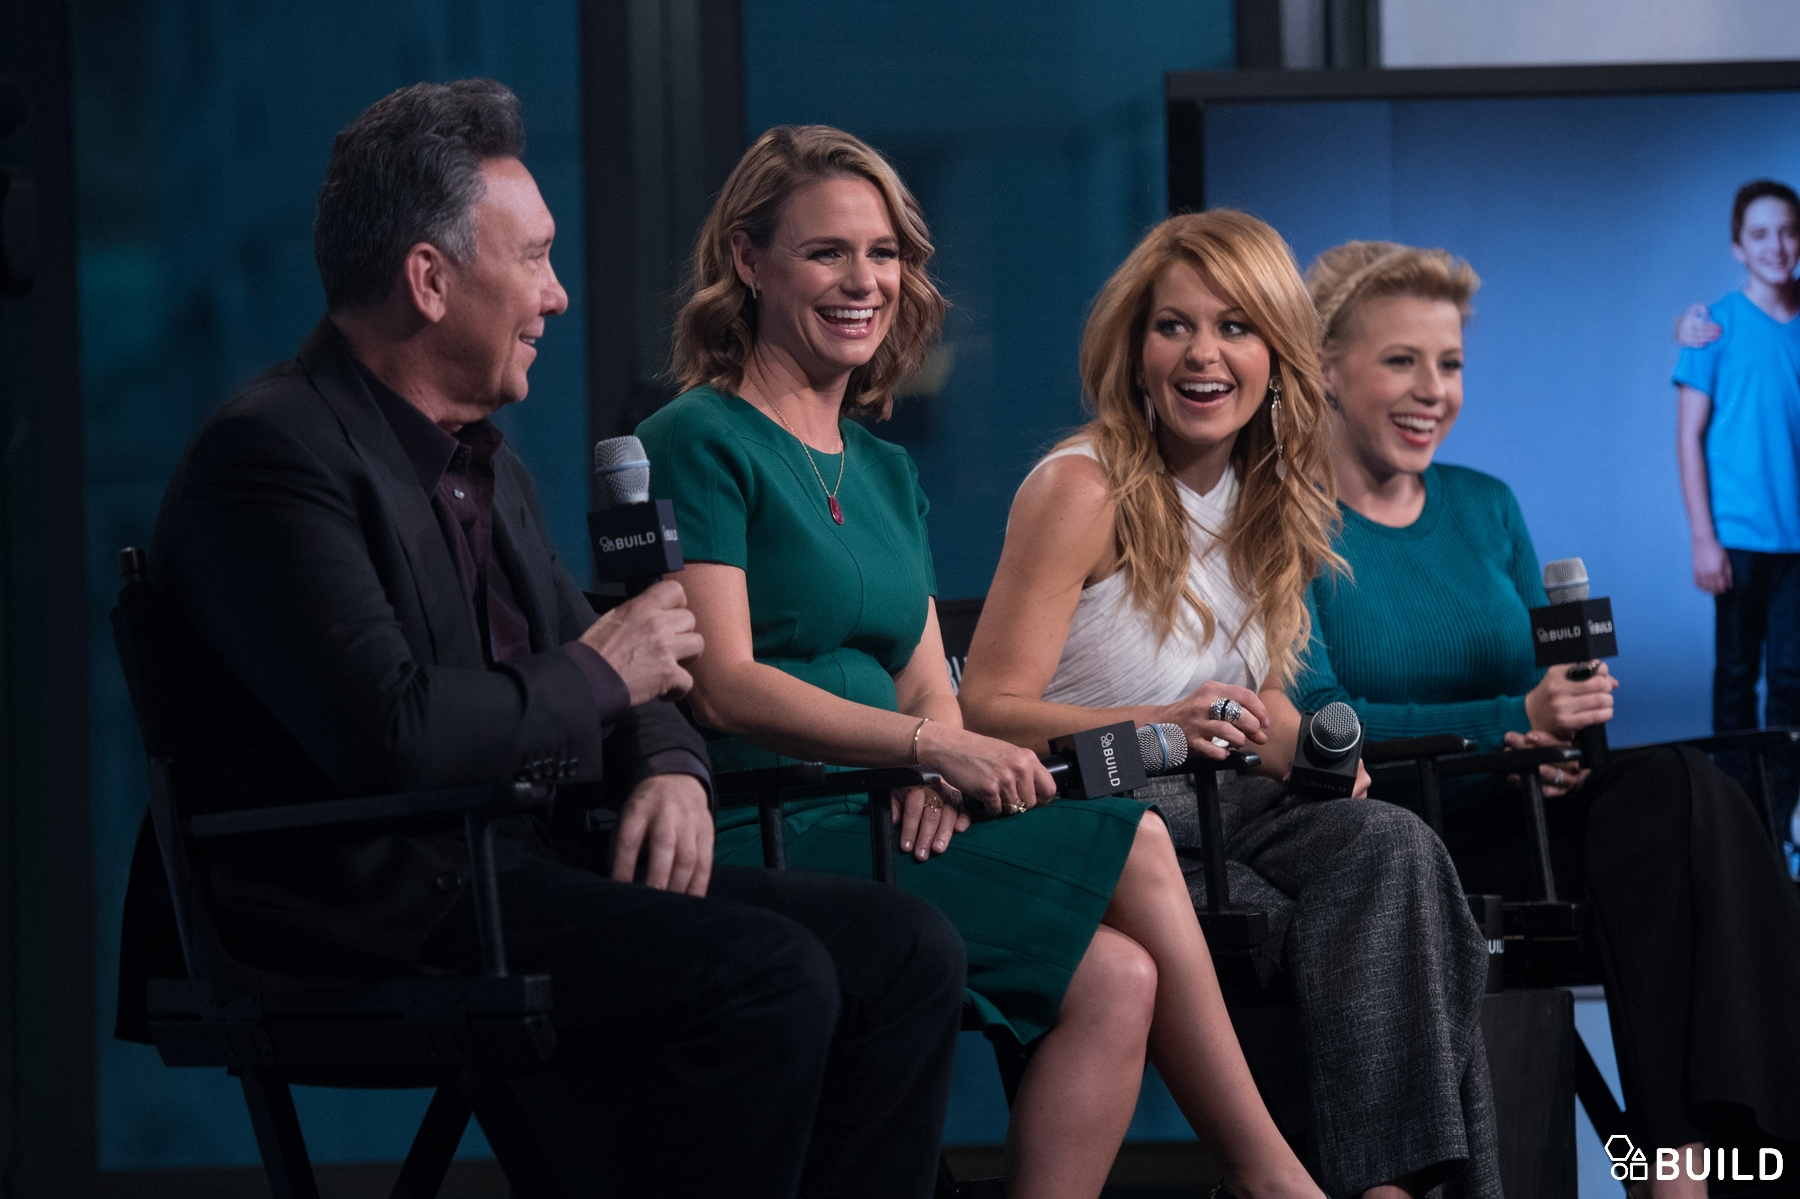 Candace Cameron Bure, Jodie Sweetin, Andrea Barber and Jeff Franklin visit AOL Hq for Build on February 25, 2016 in New York. Photos by Noam Galai